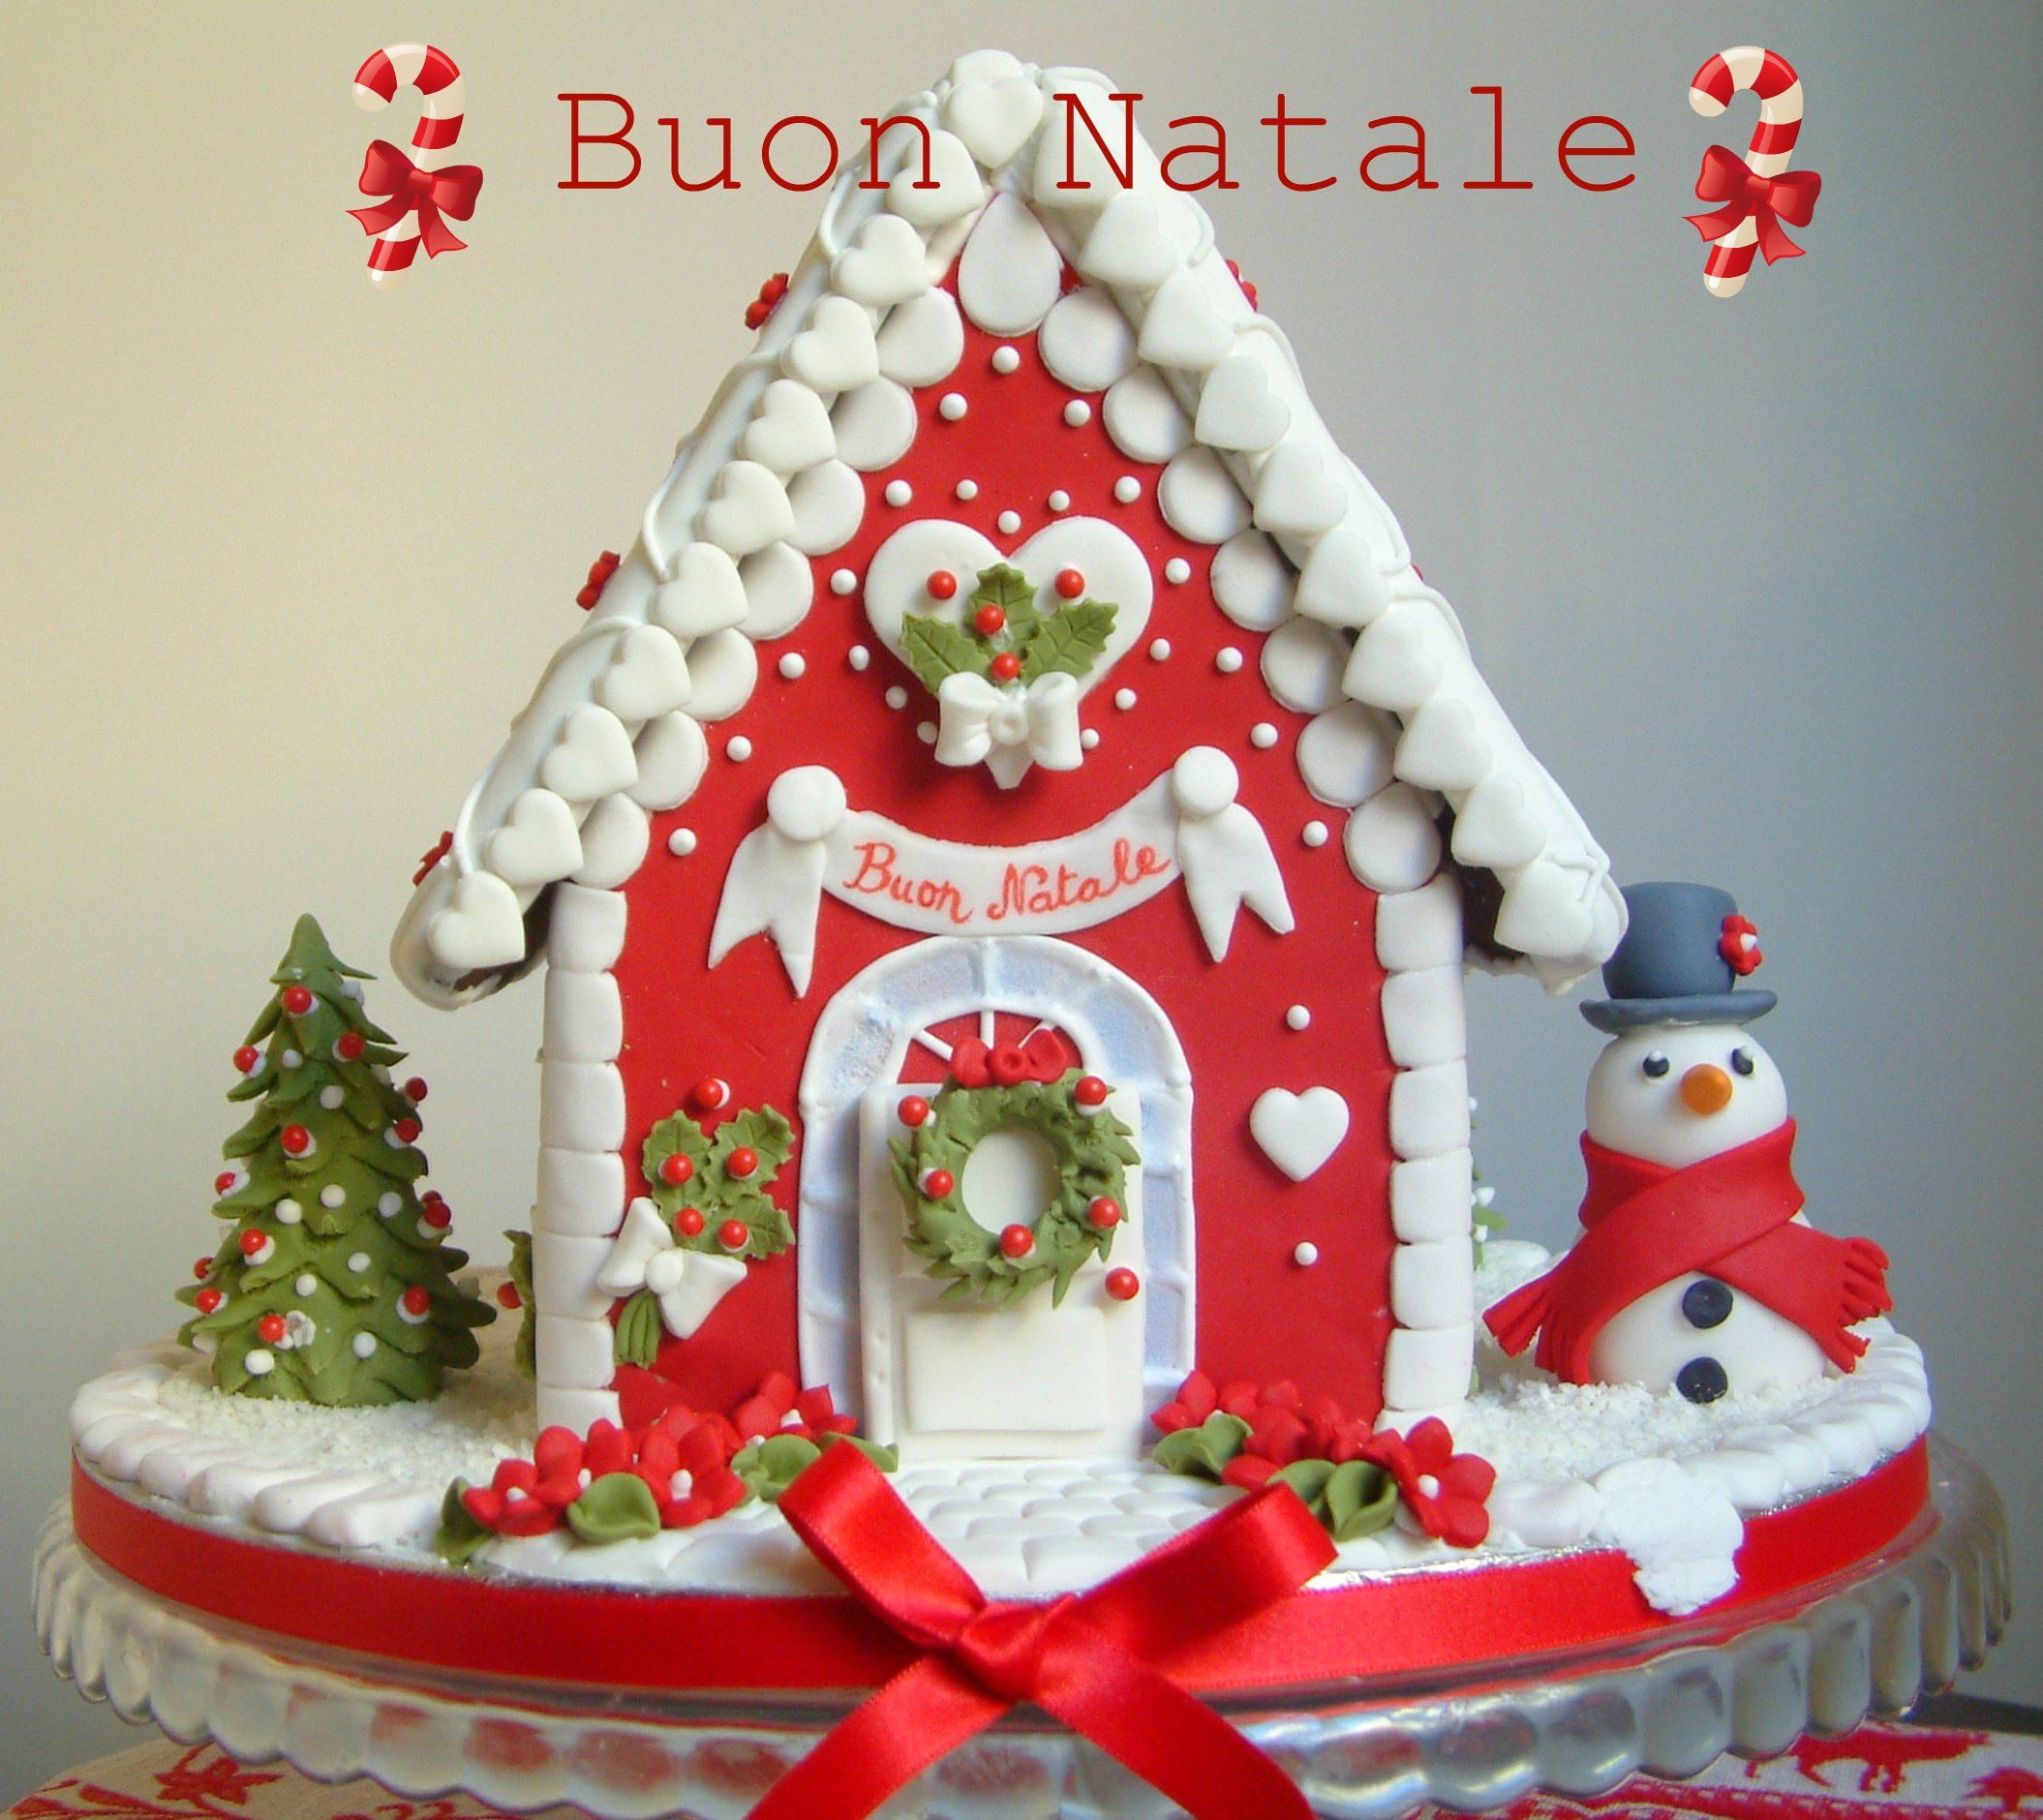 Christmas House Cake Decoration : gingerbread - fondant decorations Gingerbread House Love ...